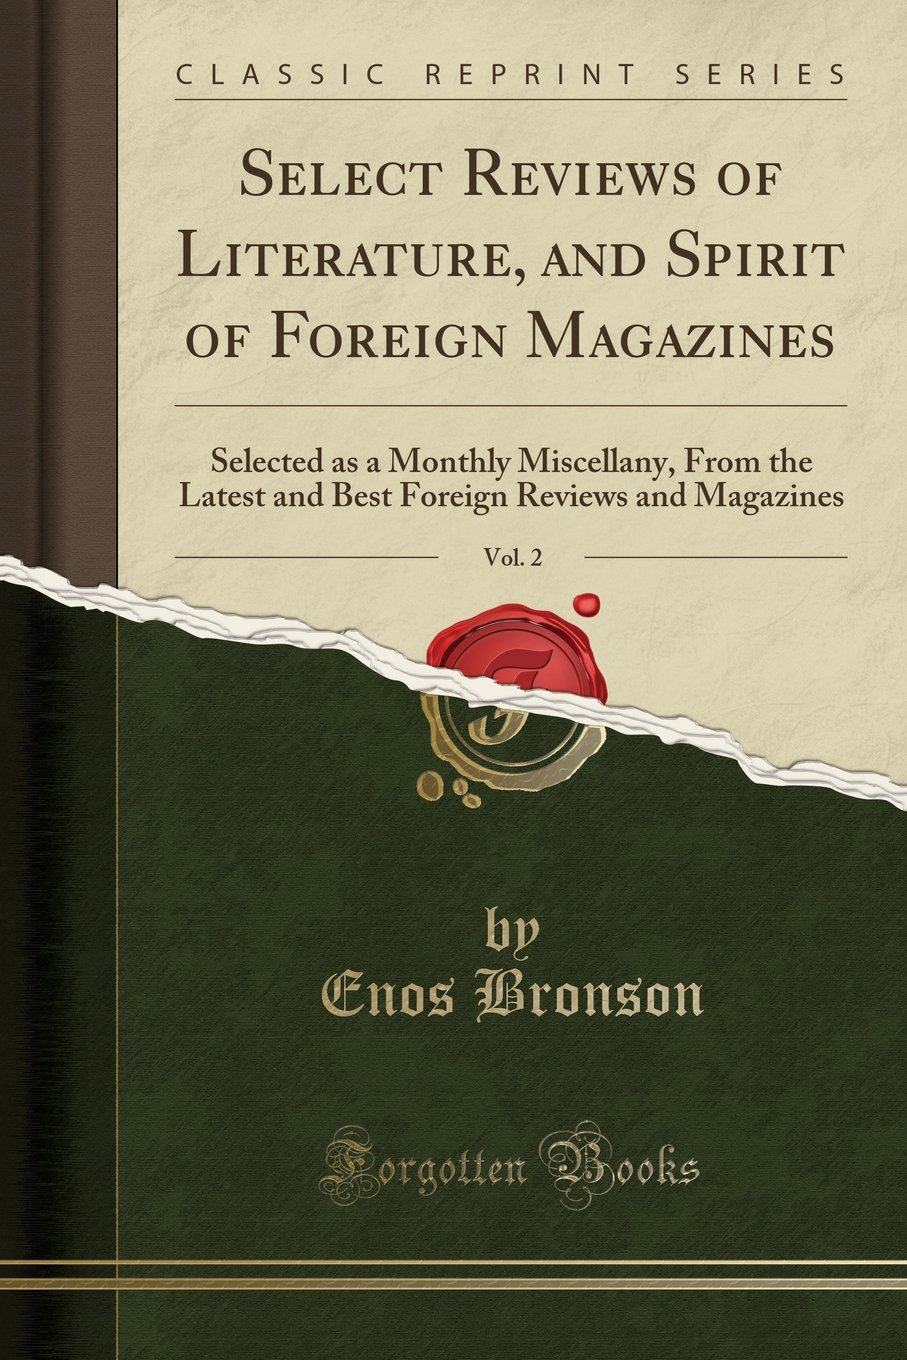 Select Reviews of Literature, and Spirit of Foreign Magazines, Vol. 2: Selected as a Monthly Miscellany, From the Latest and Best Foreign Reviews and Magazines (Classic Reprint) pdf epub